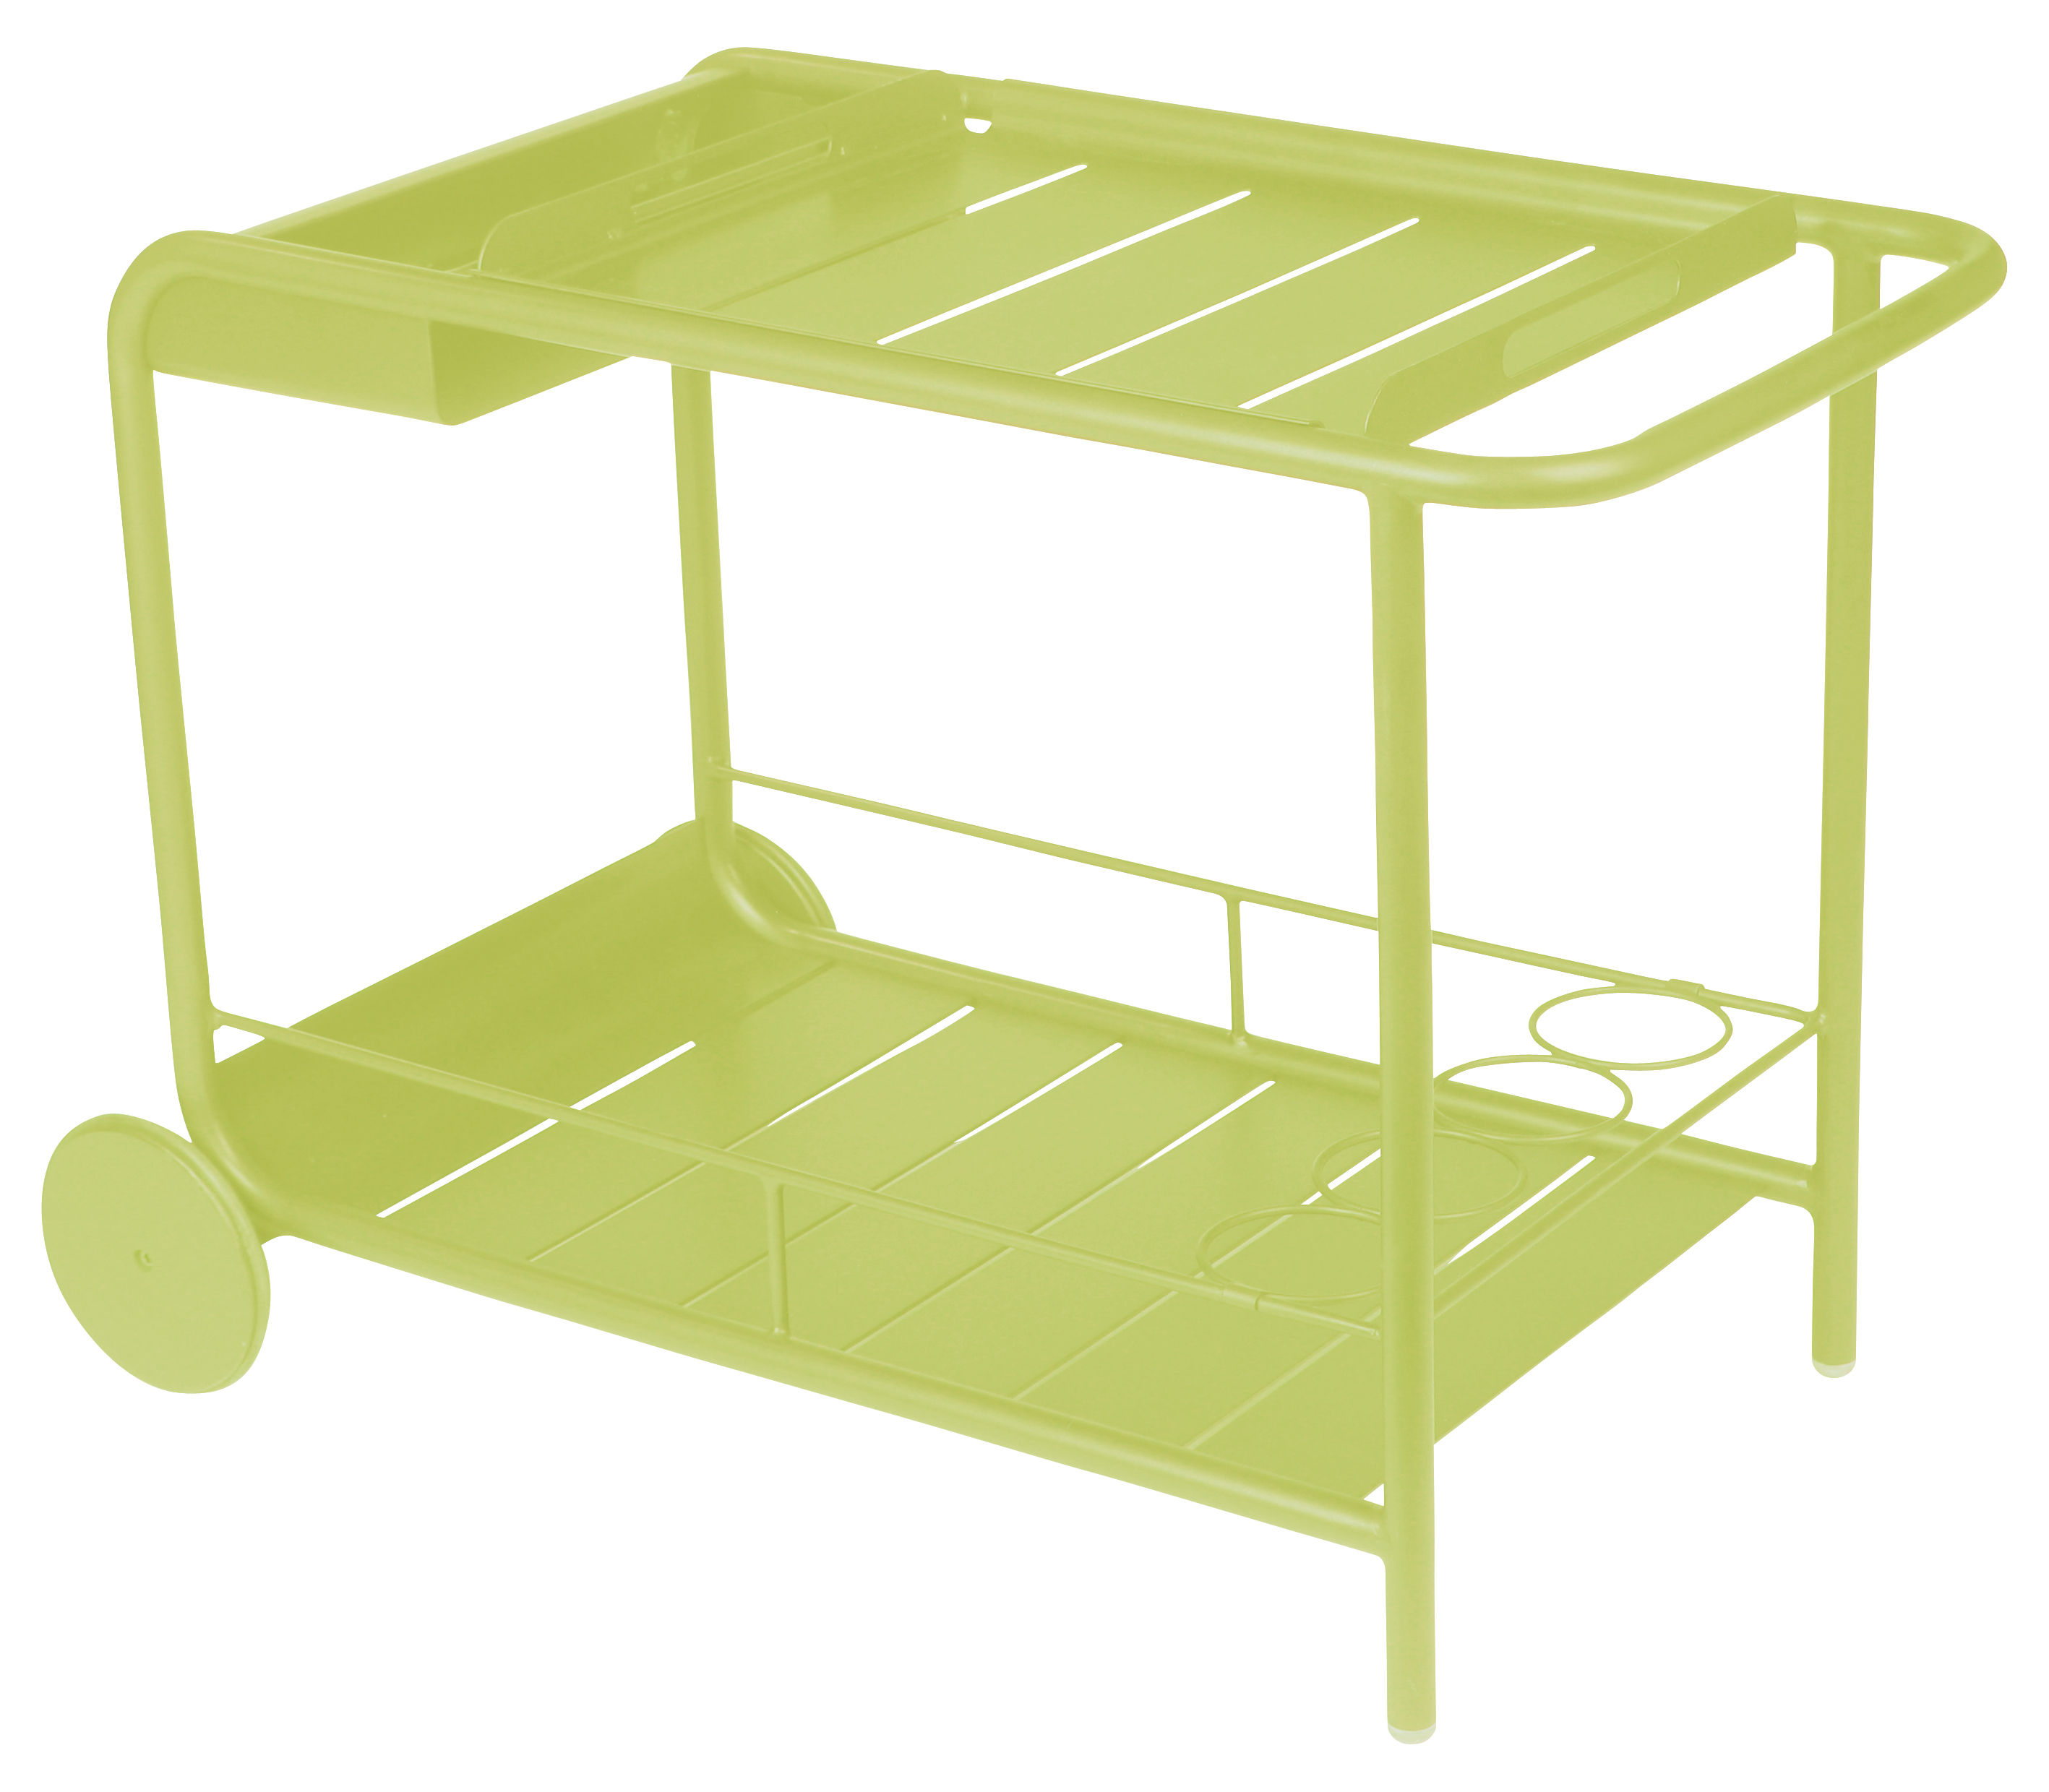 Furniture - Miscellaneous furniture - Luxembourg Dresser - Trolley bar by Fermob - Verbena - Lacquered aluminium